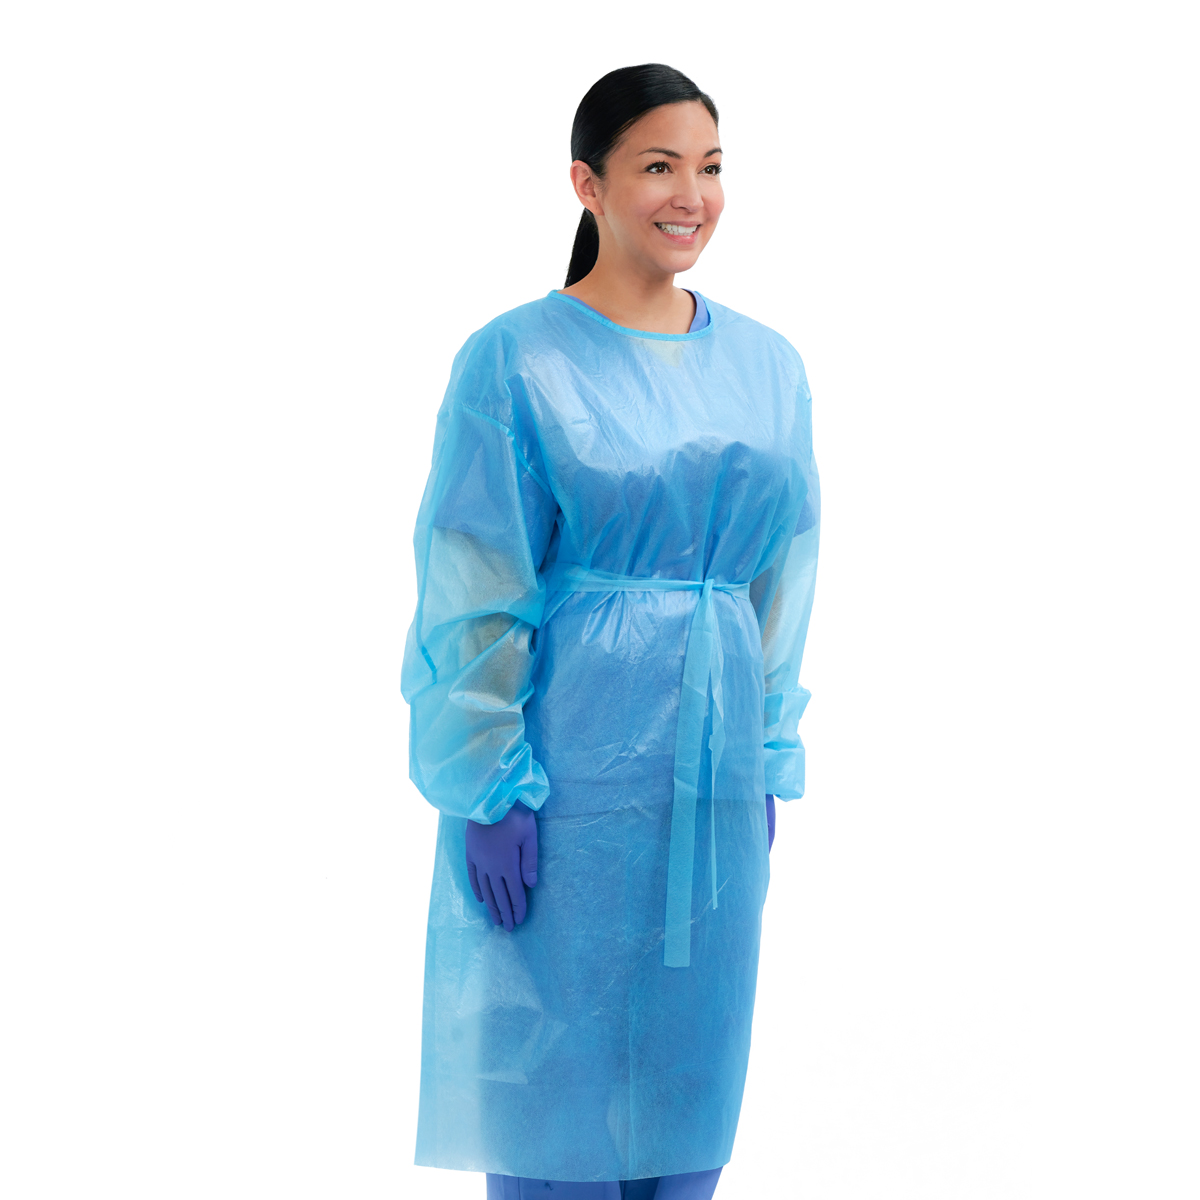 AAMI Level 1 Gown Image